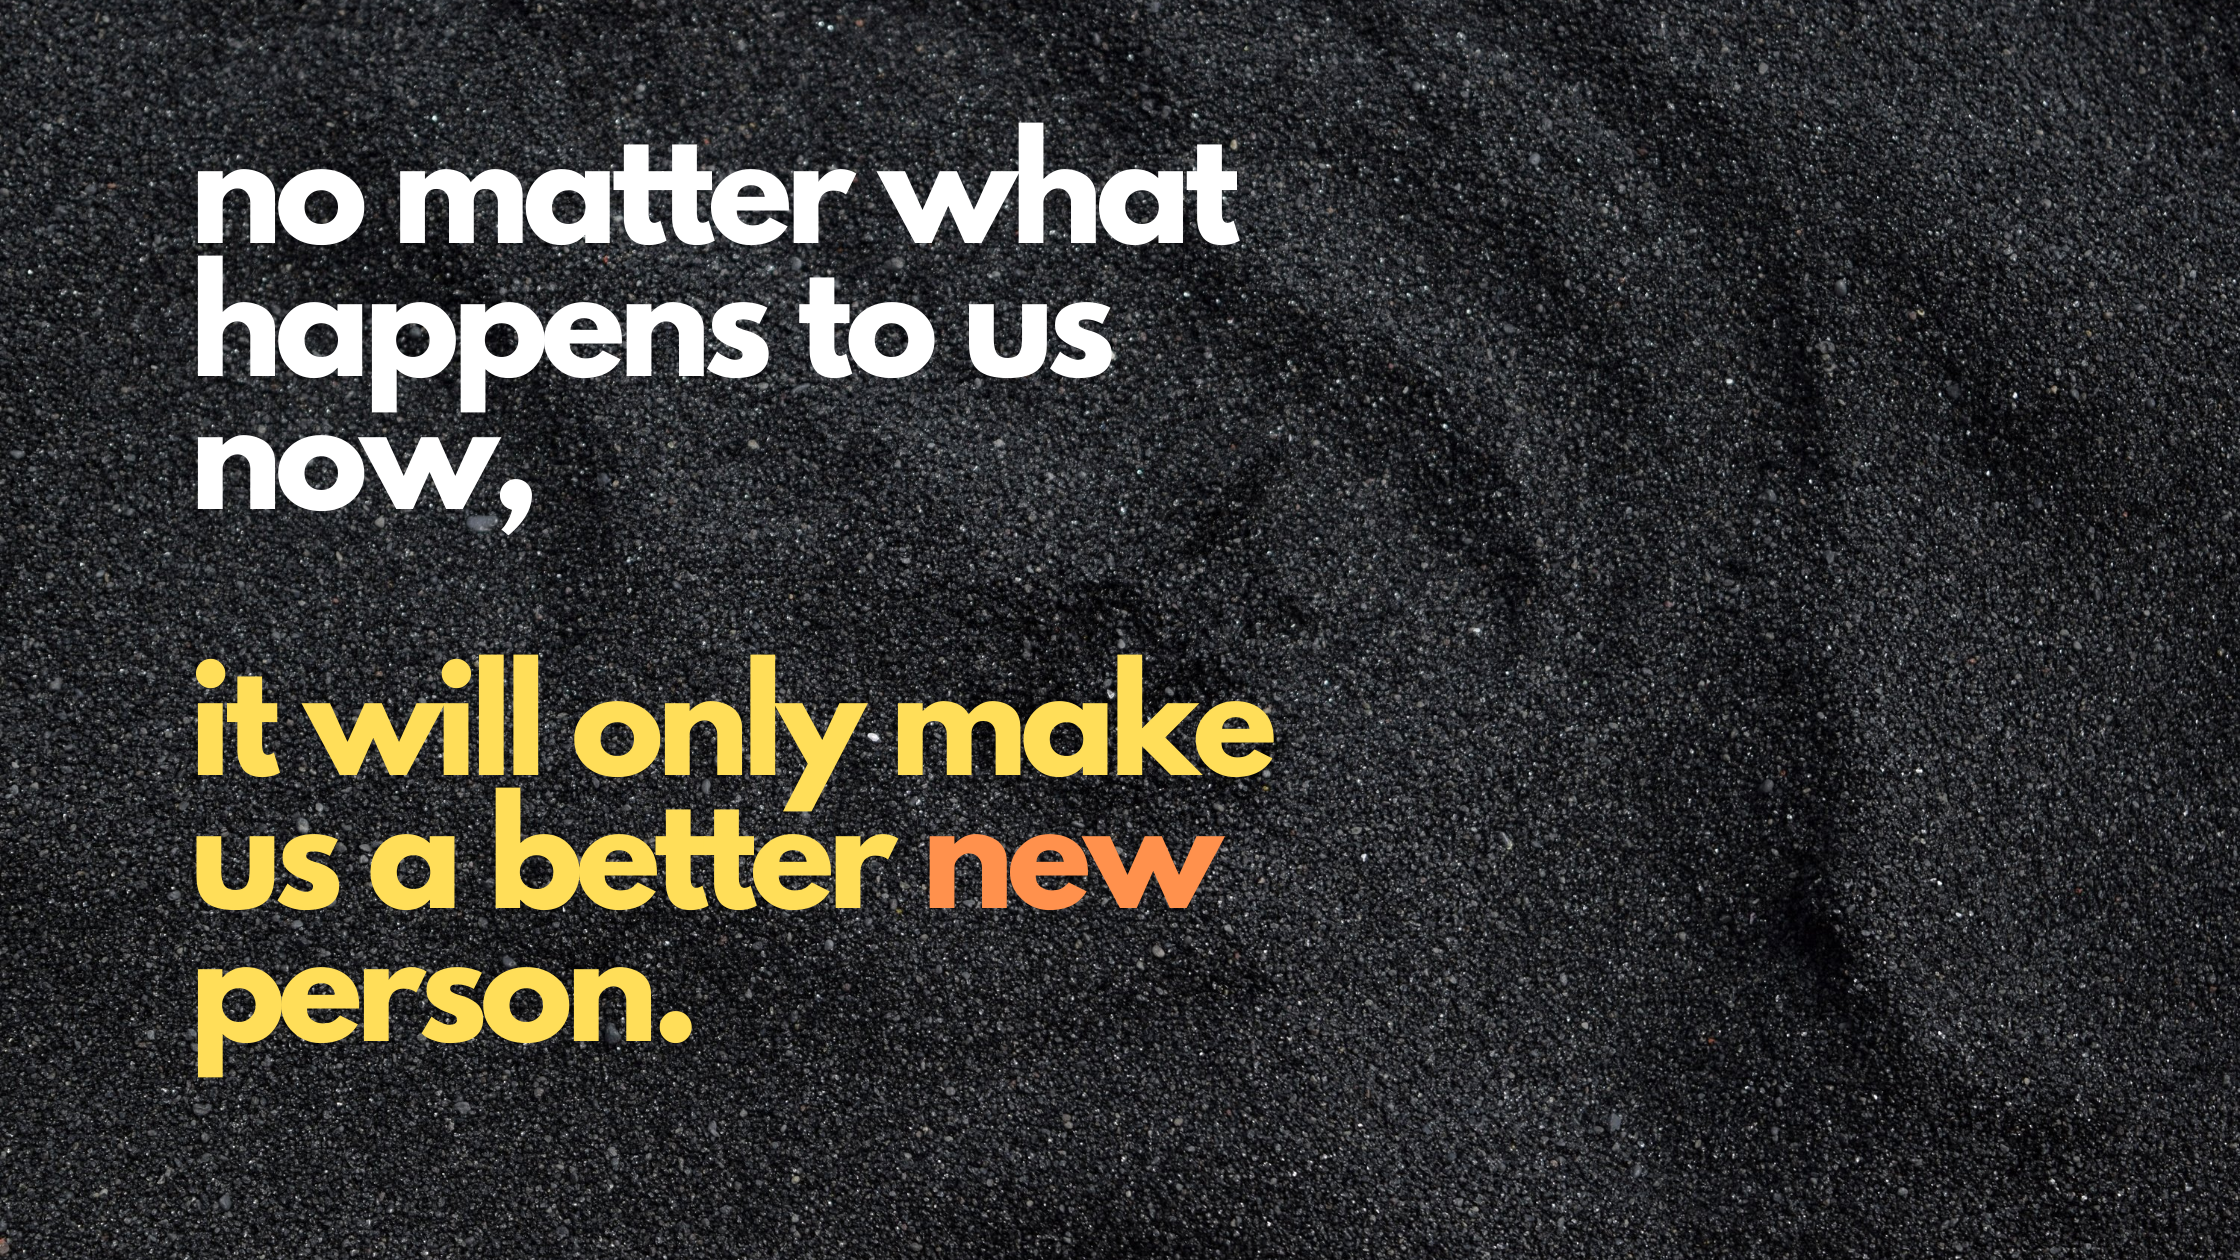 no matter what happens to us now, it will only make us a better new person.